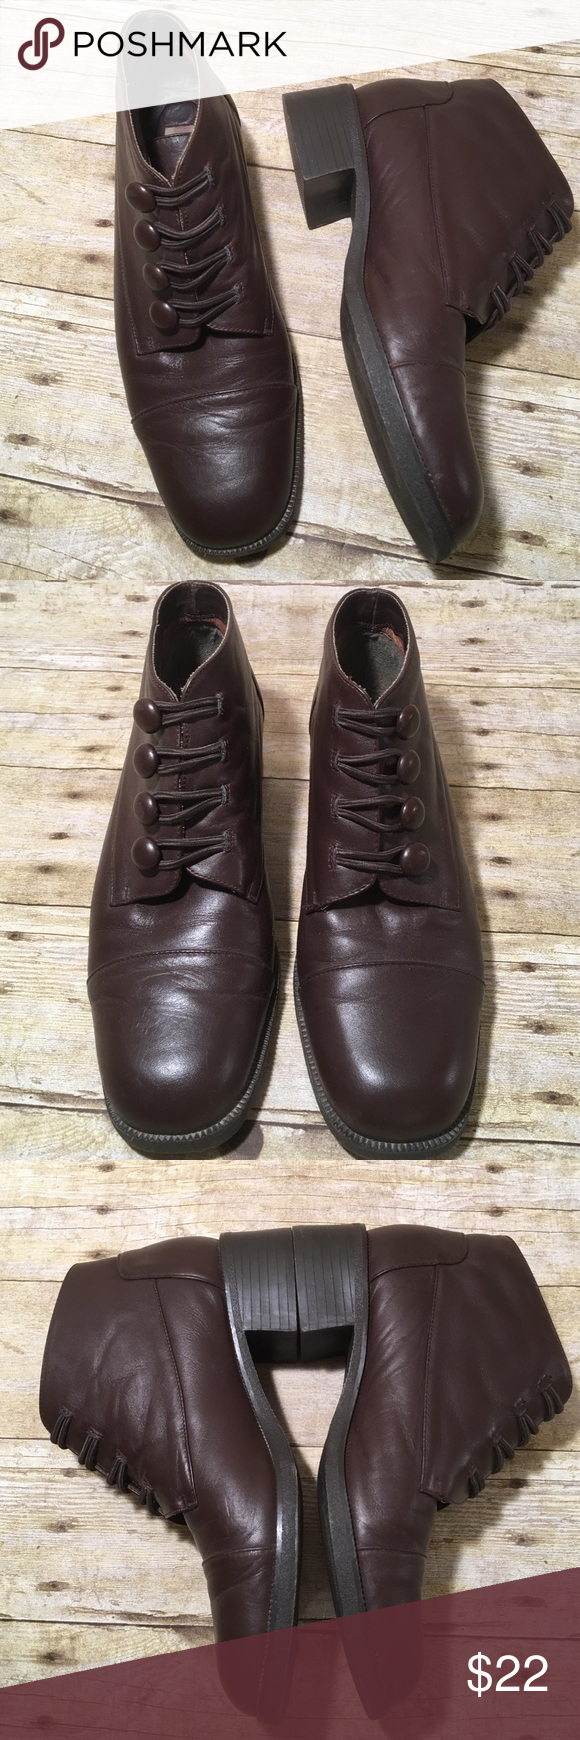 """G. Whiz Brown Ankle Boots Size 8M Lined Leather 4 1/2"""" high from bottom of the heel to the top of the boot. In really good condition with the exception of 1 tiny scuff. 1"""" chunky heel. Nonslip sole. Non smoking home g. whiz Shoes Ankle Boots & Booties"""